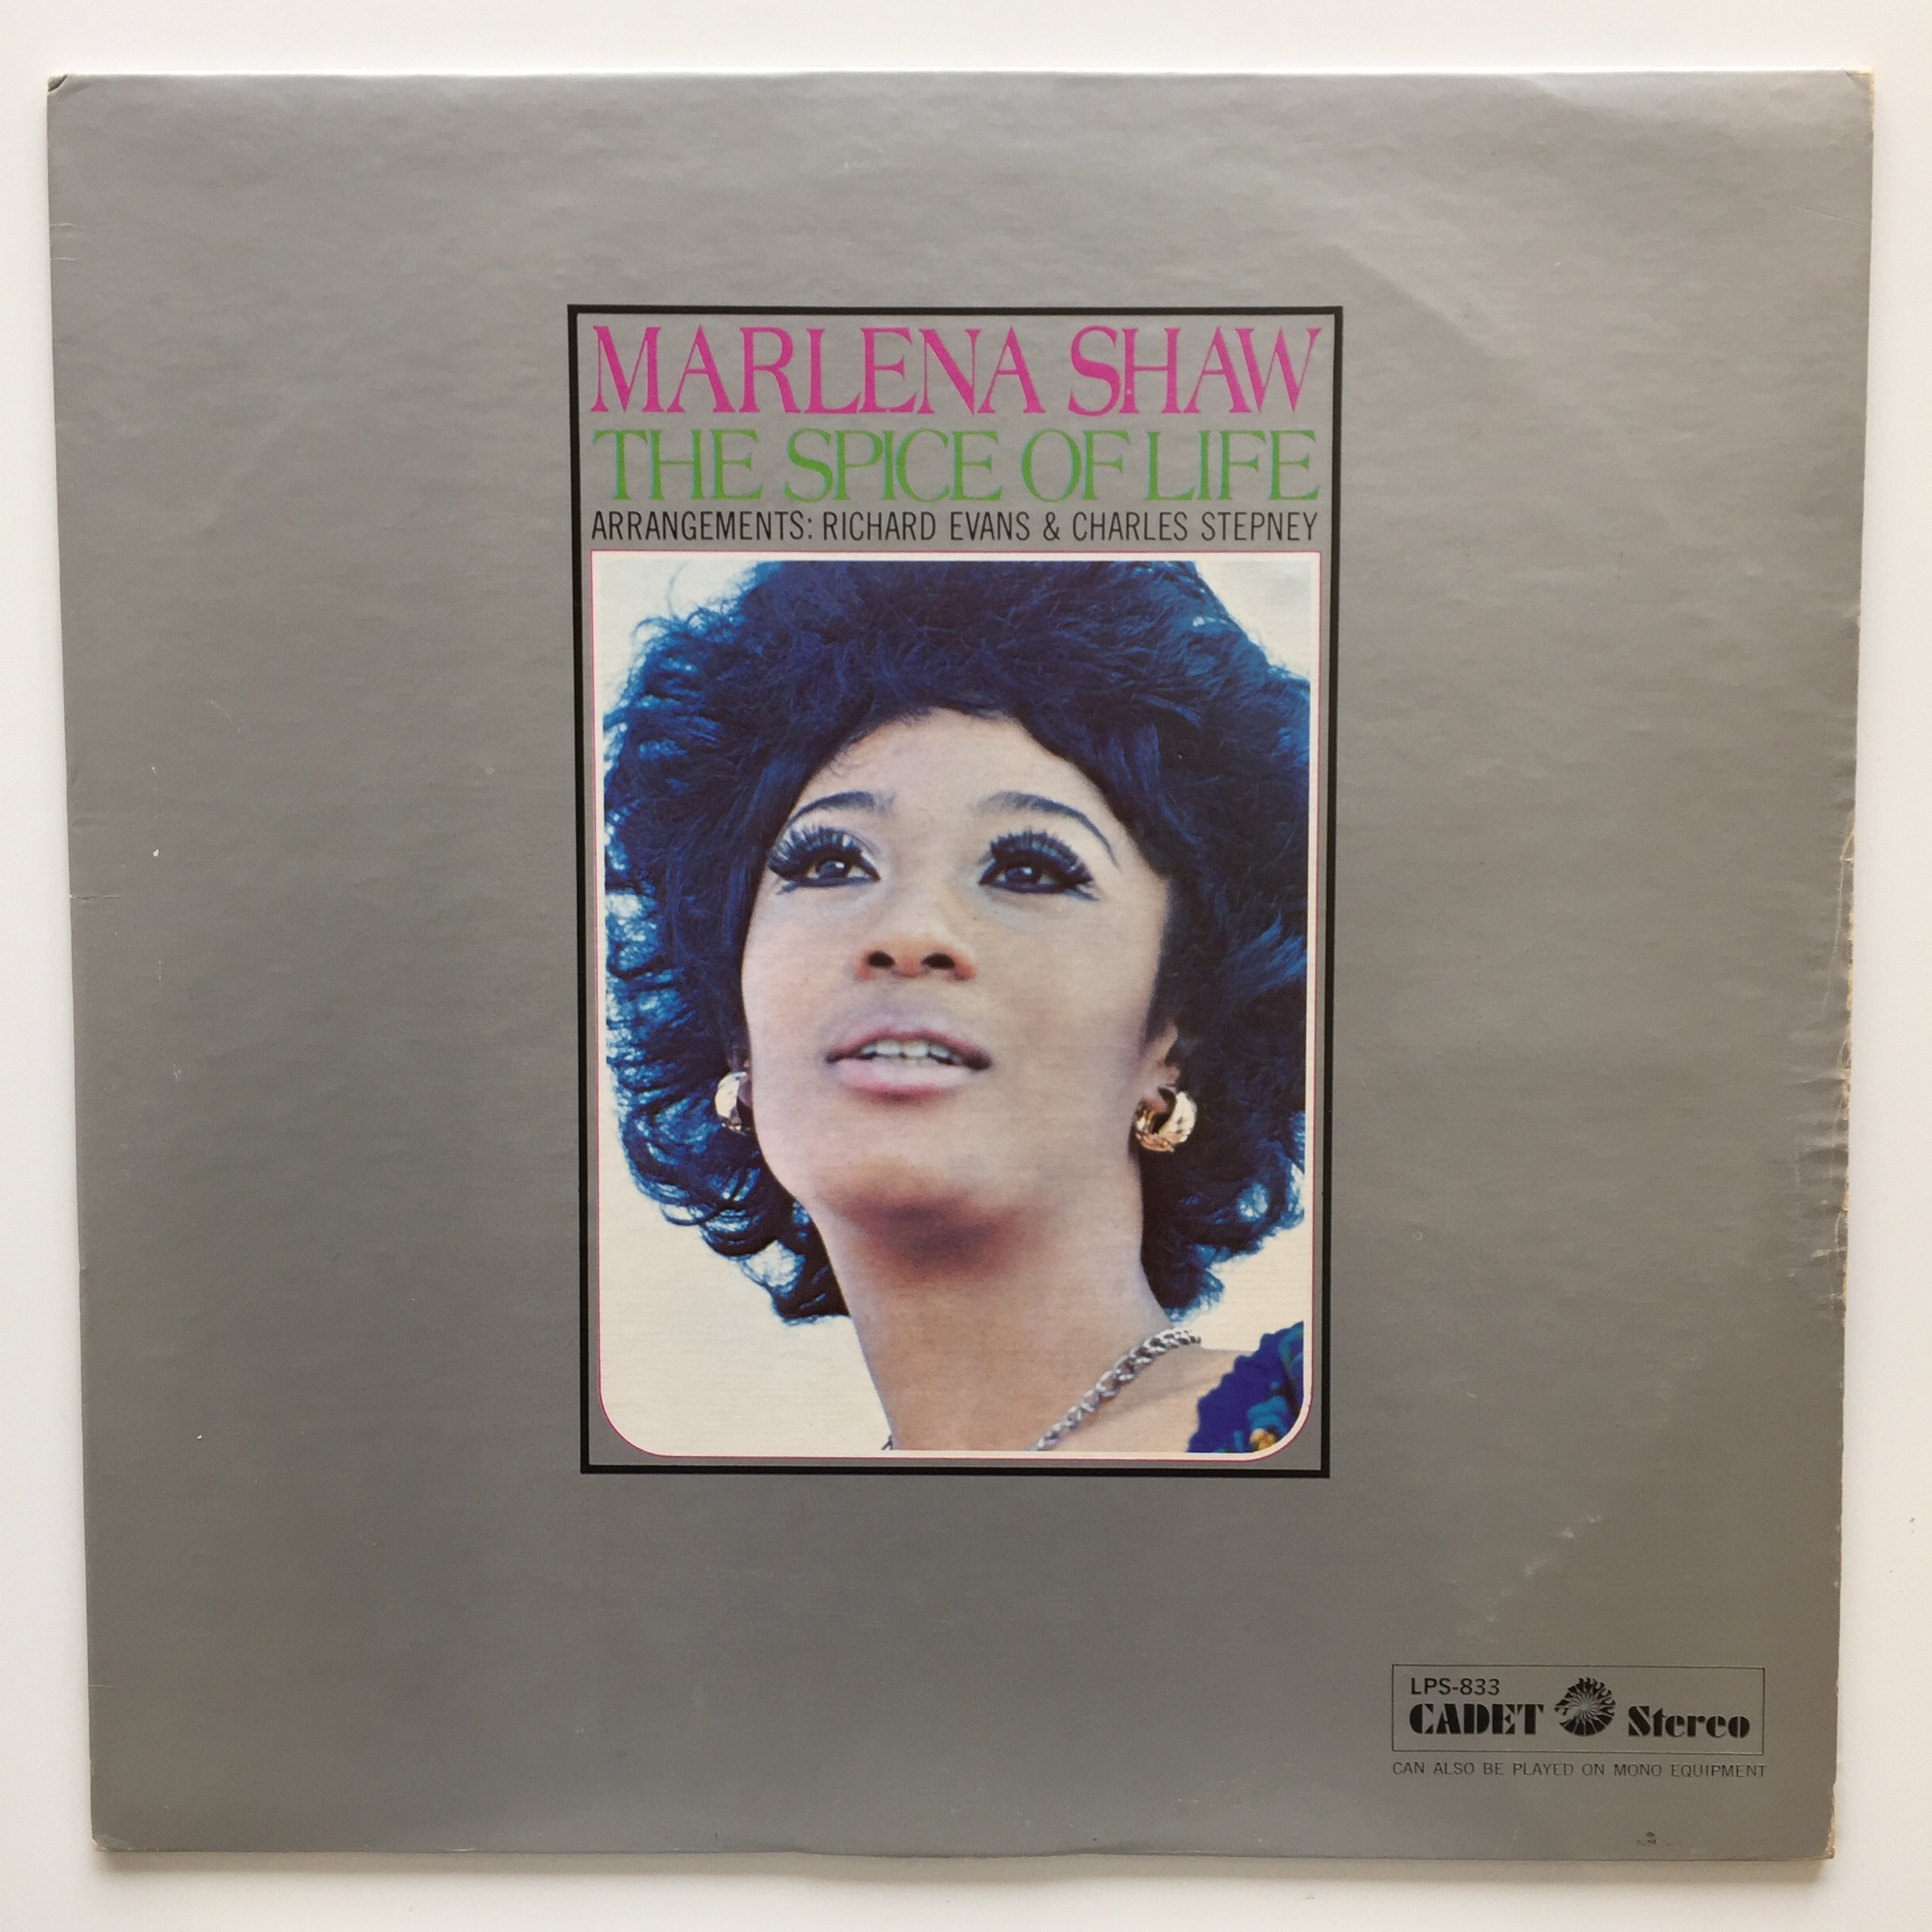 ●MARLENA SHAW / THE SPICE OF LIFE